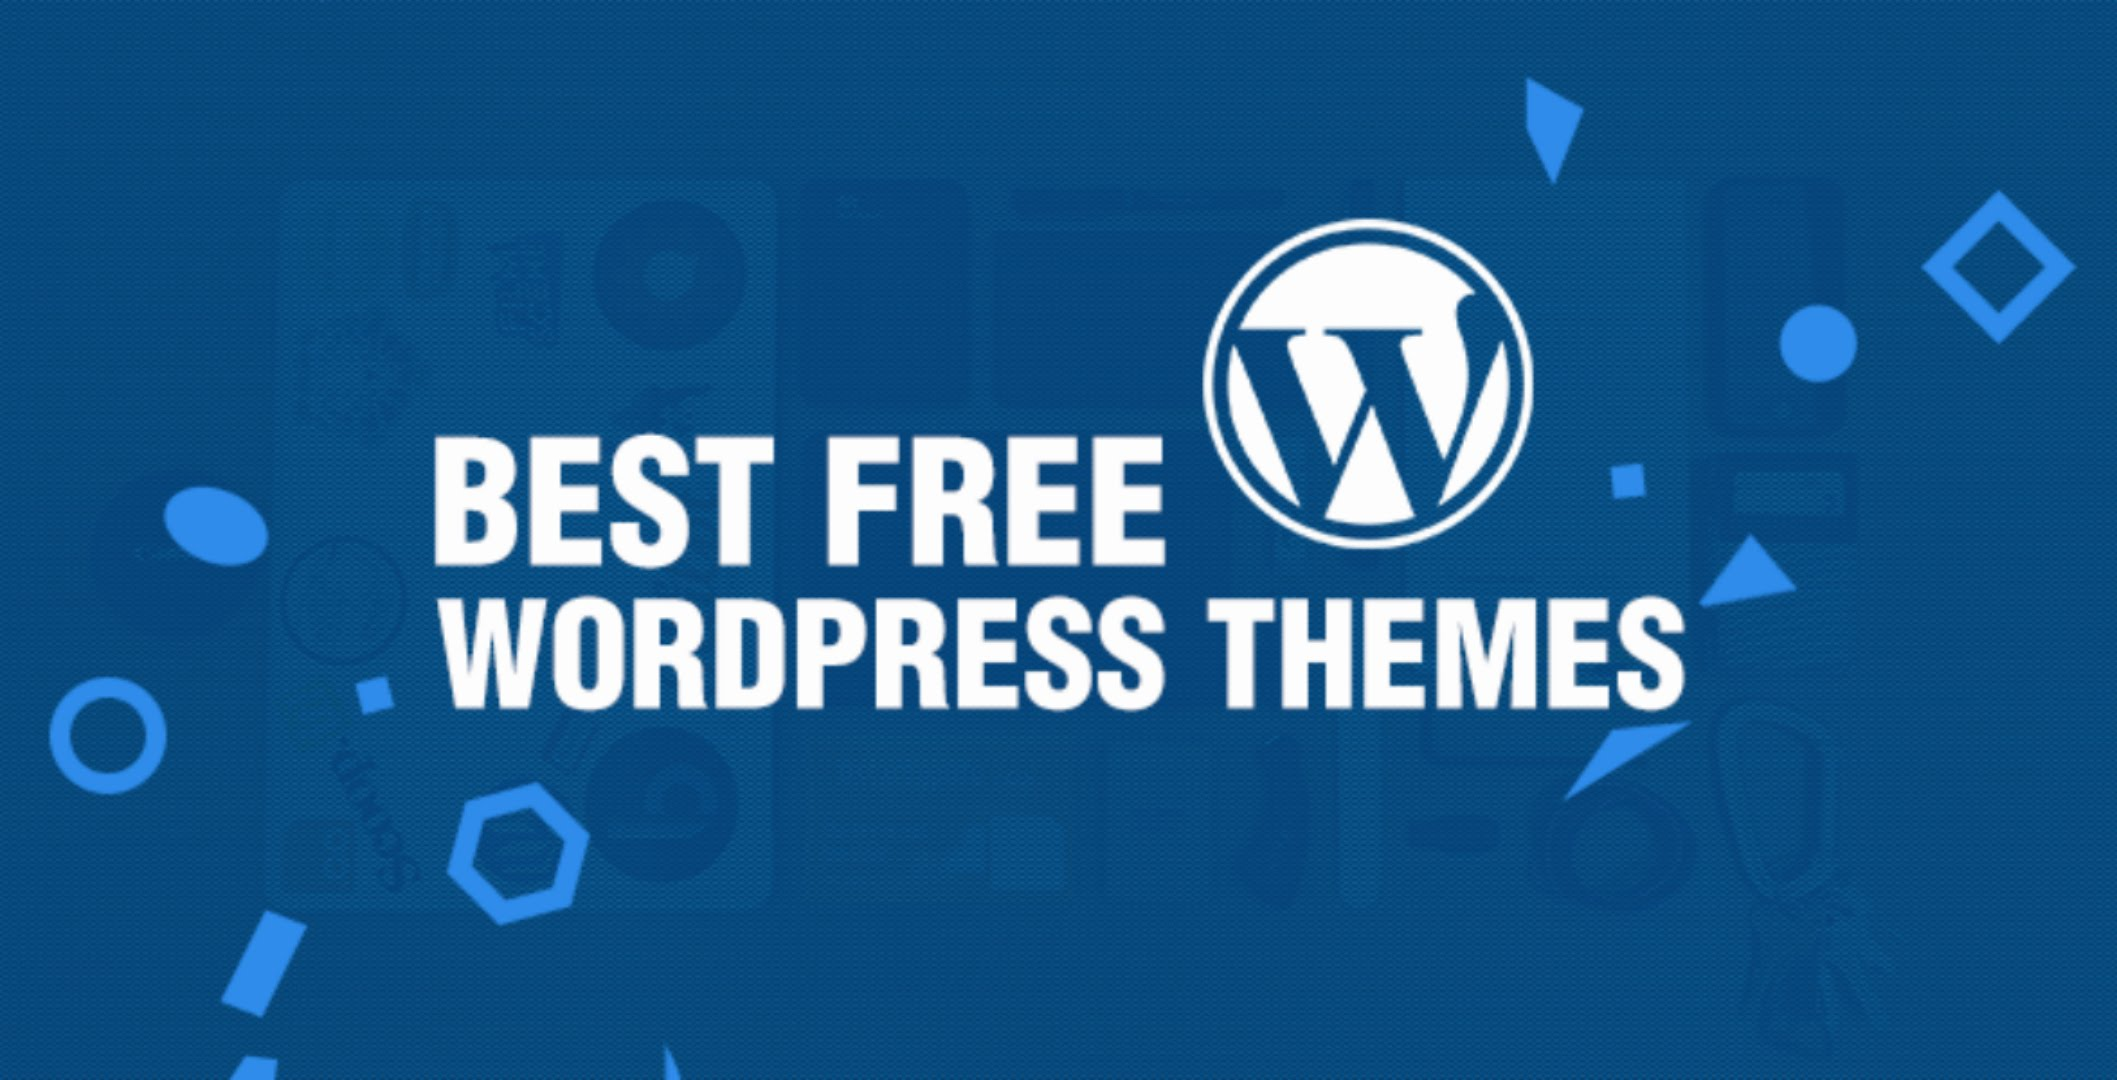 Your Blog Look Professional Use Free WordPress Themes